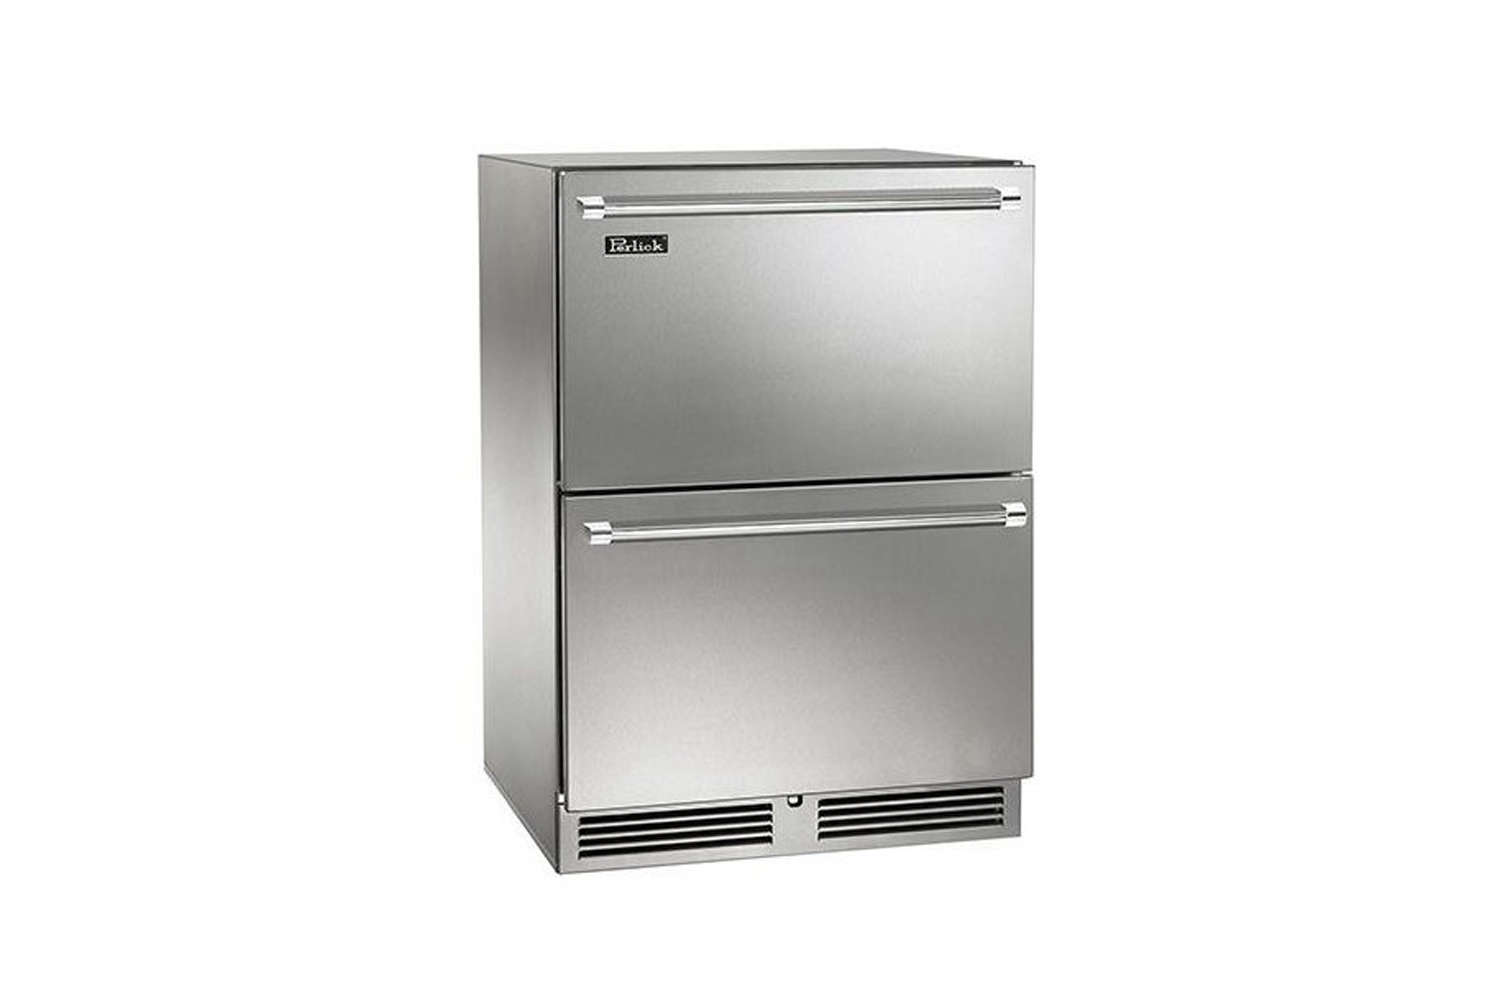 The Perlick  Inch Outdoor Undercounter Freezer-Refrigerator Drawers (HPZO35) can be used indoors or out; $4,999 at AJ Madison.